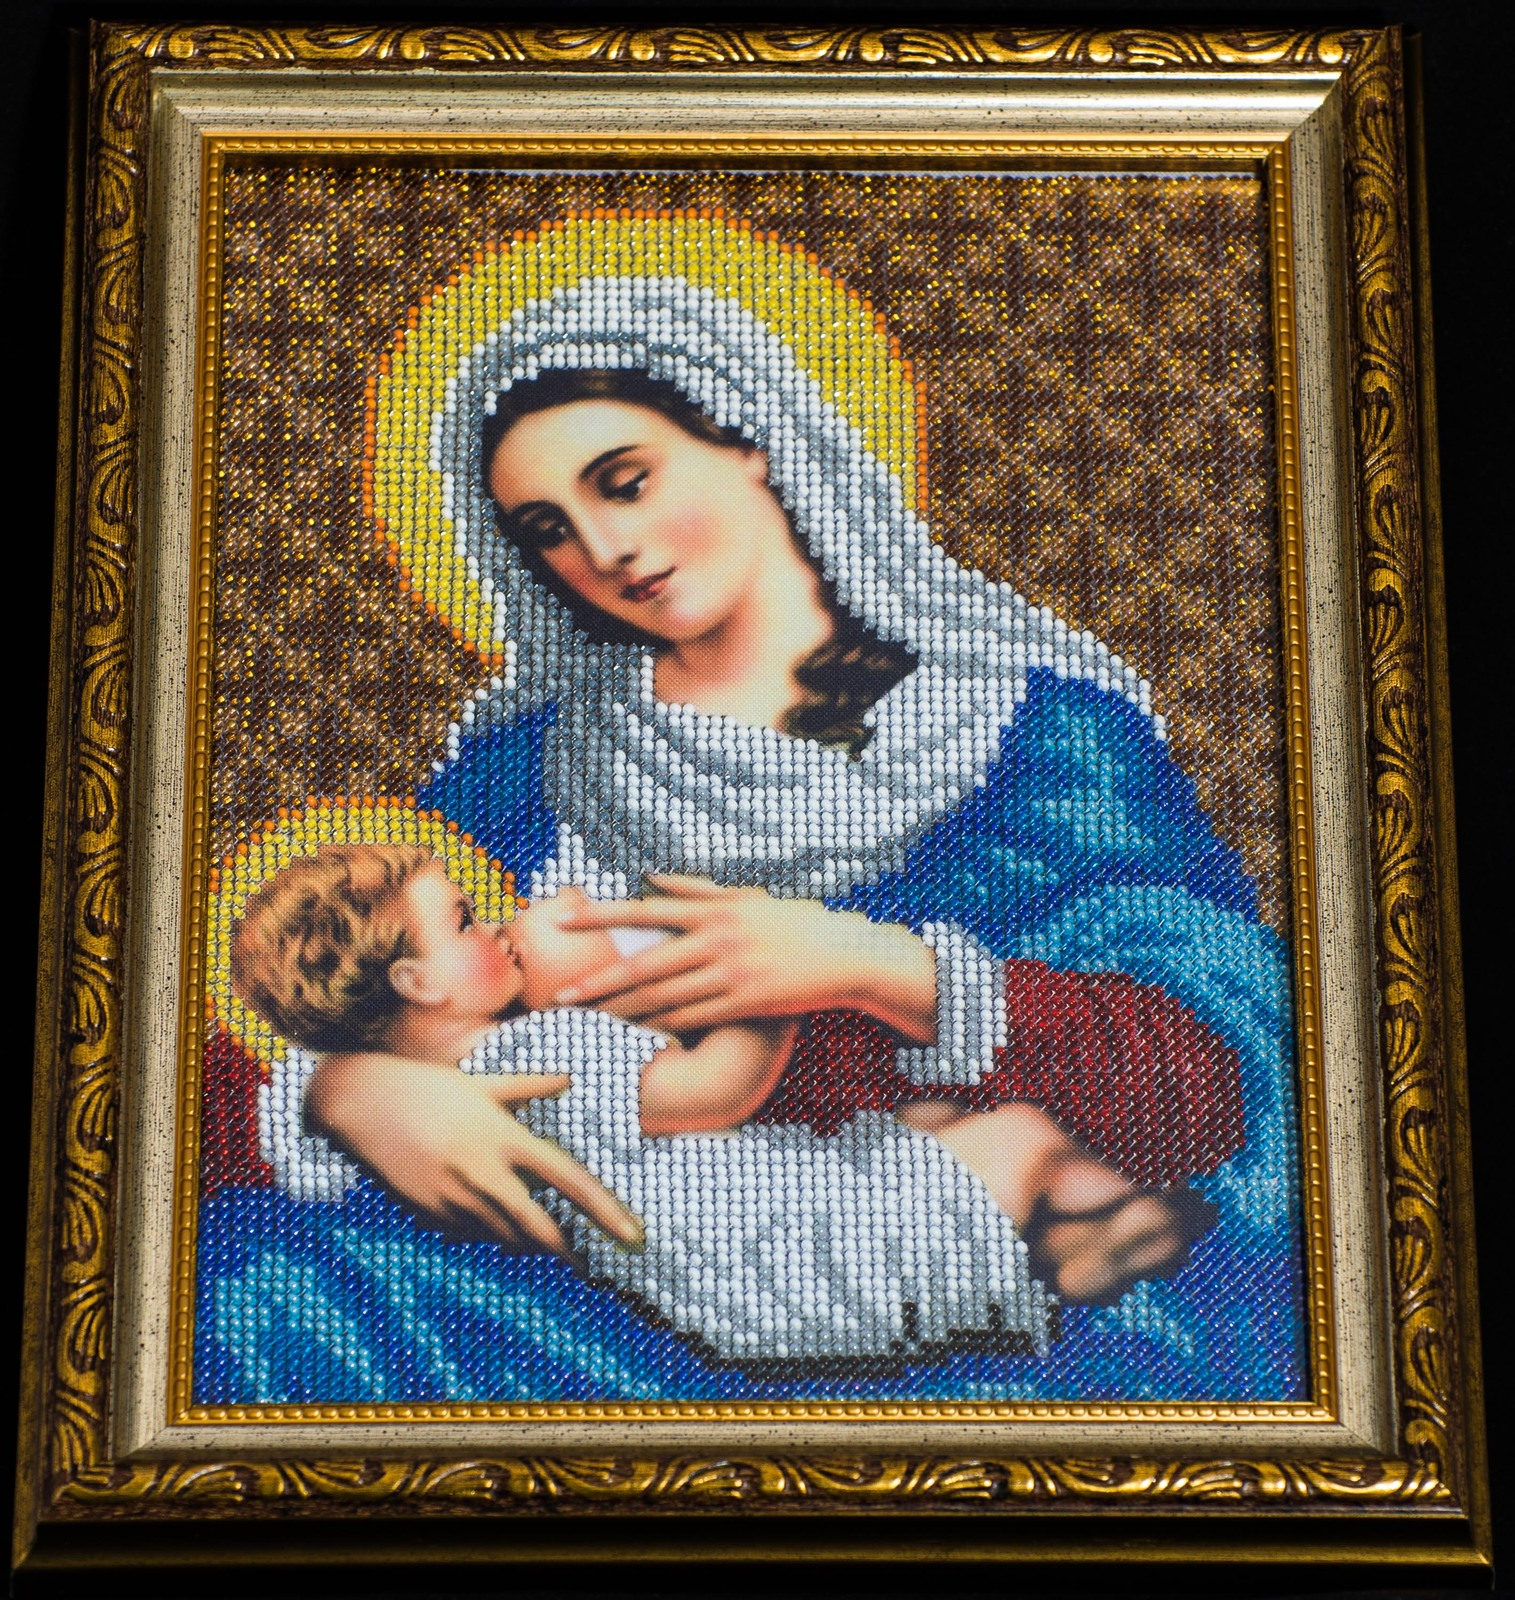 """Icon embroidered with beads """"Virgin Mary nursing Jesus""""– religious gift idea! image 3"""